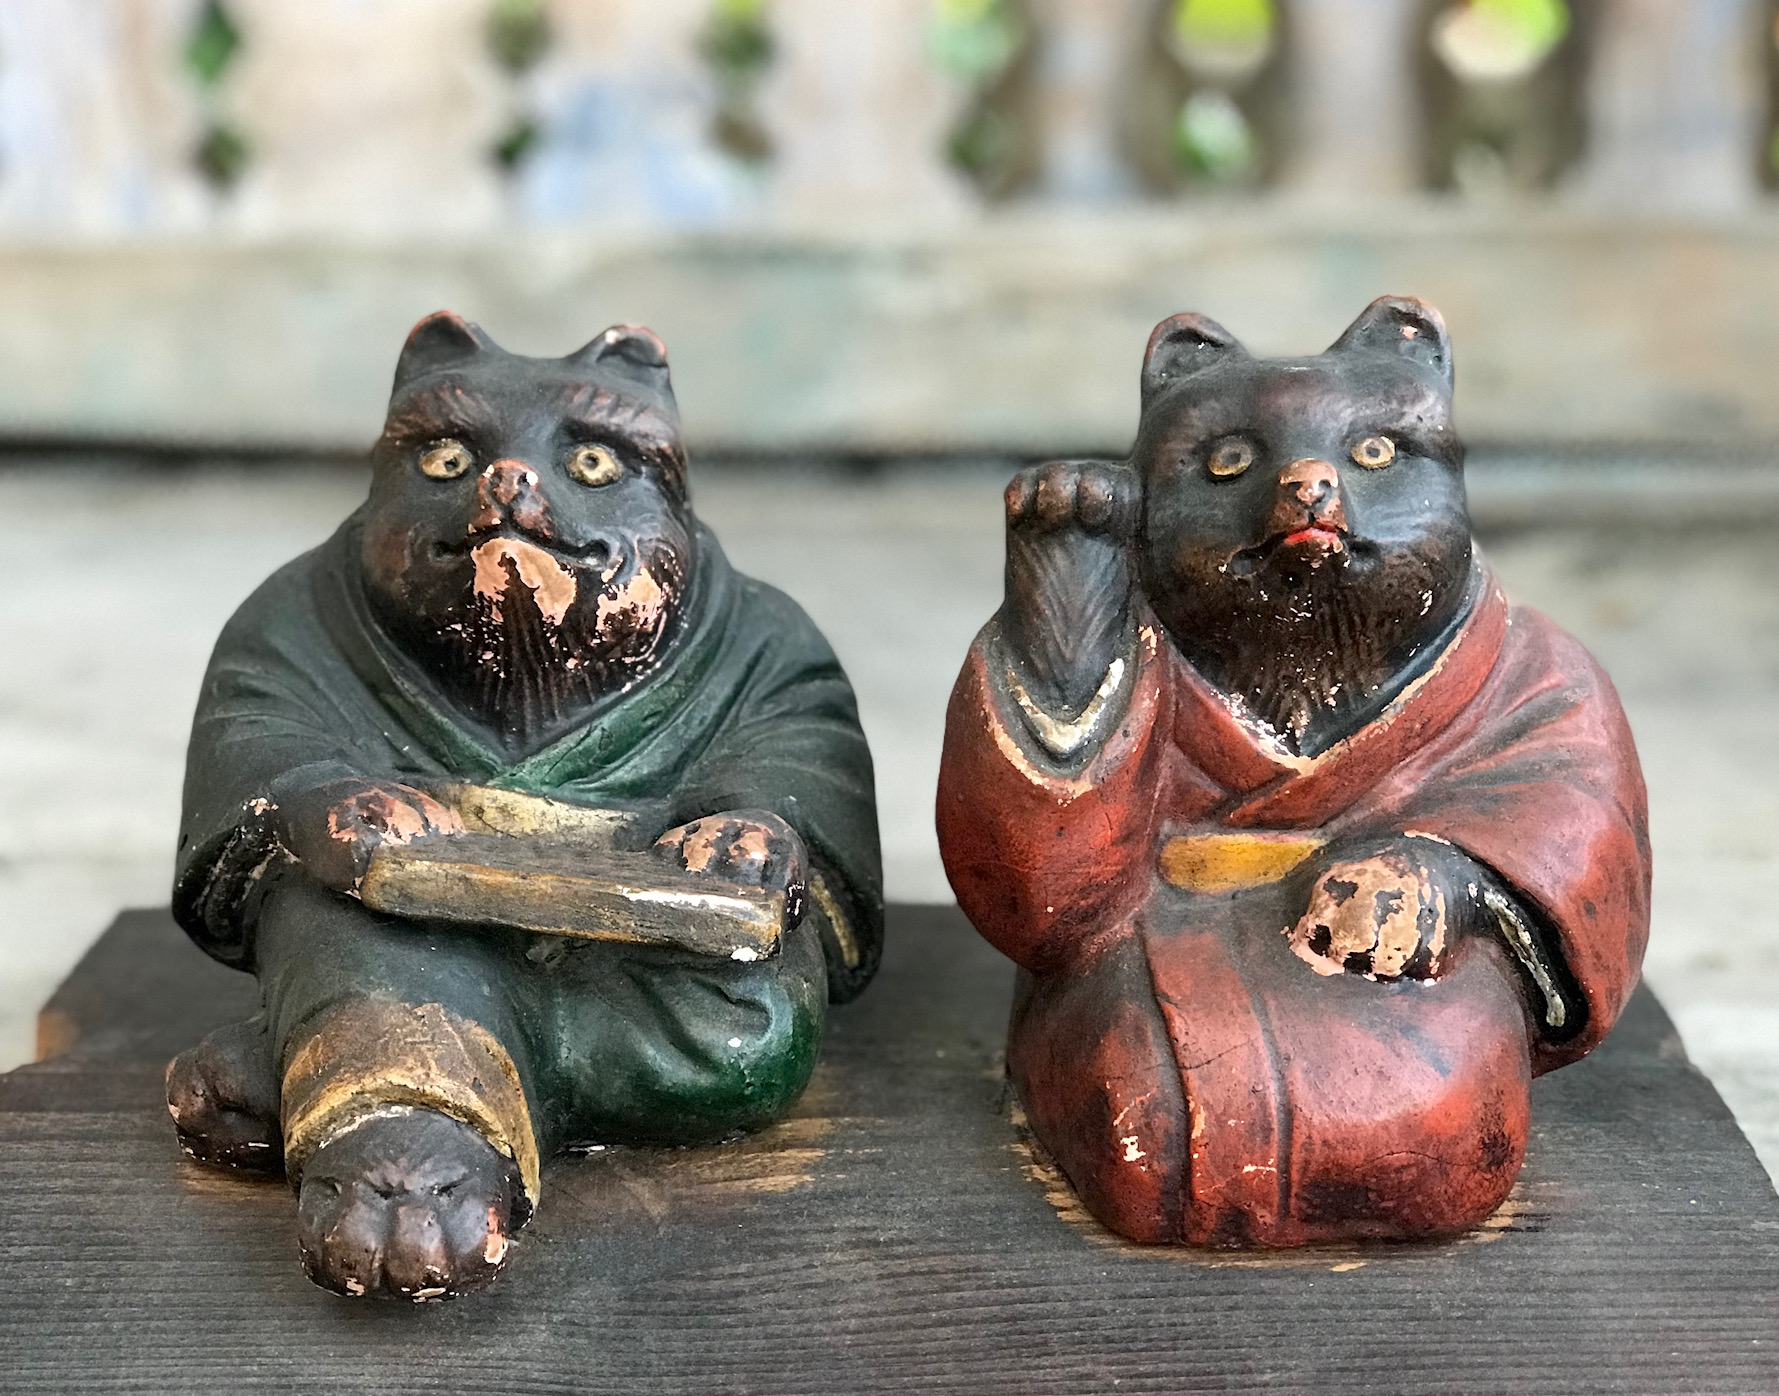 """2 Wooden Tanuki in kimonos with abacus, and calling for good luck, Tanuki have a very complex and interesting folkloric history. While largely unheard of in the states, Tanuki have been among the most significant characters in Japan since ancient times. Contemporary Tanuki are primarily a welcoming symbol of prosperity. In the mid 20th century the character was adapted, both visually and symbolically, to suit modern culture and, although they retain much of their prankster persona from the original 16th century creatures, they are much more benign. They have a long list of supernatural powers, most notable shape-shifting. Ancient Tanuki, humorously portrayed in block prints are now mostly found in museums and private collections. Tanuki statues are often found in restaurant or shop windows and outside temples. Famous for getting drunk and not paying their bills, they are usually portrayed wearing a straw hat and carrying a flask of sake and a ledger of promissory notes. Thus they can also serve as cautionary figures against the hazards of overindulging in alcohol. They always have big bellies and humorously large testicles which they use as drums. 5"""" x 10 1/4"""" x 7 1/2"""", sold., thedavidalancollection.com , solana beach, ca"""